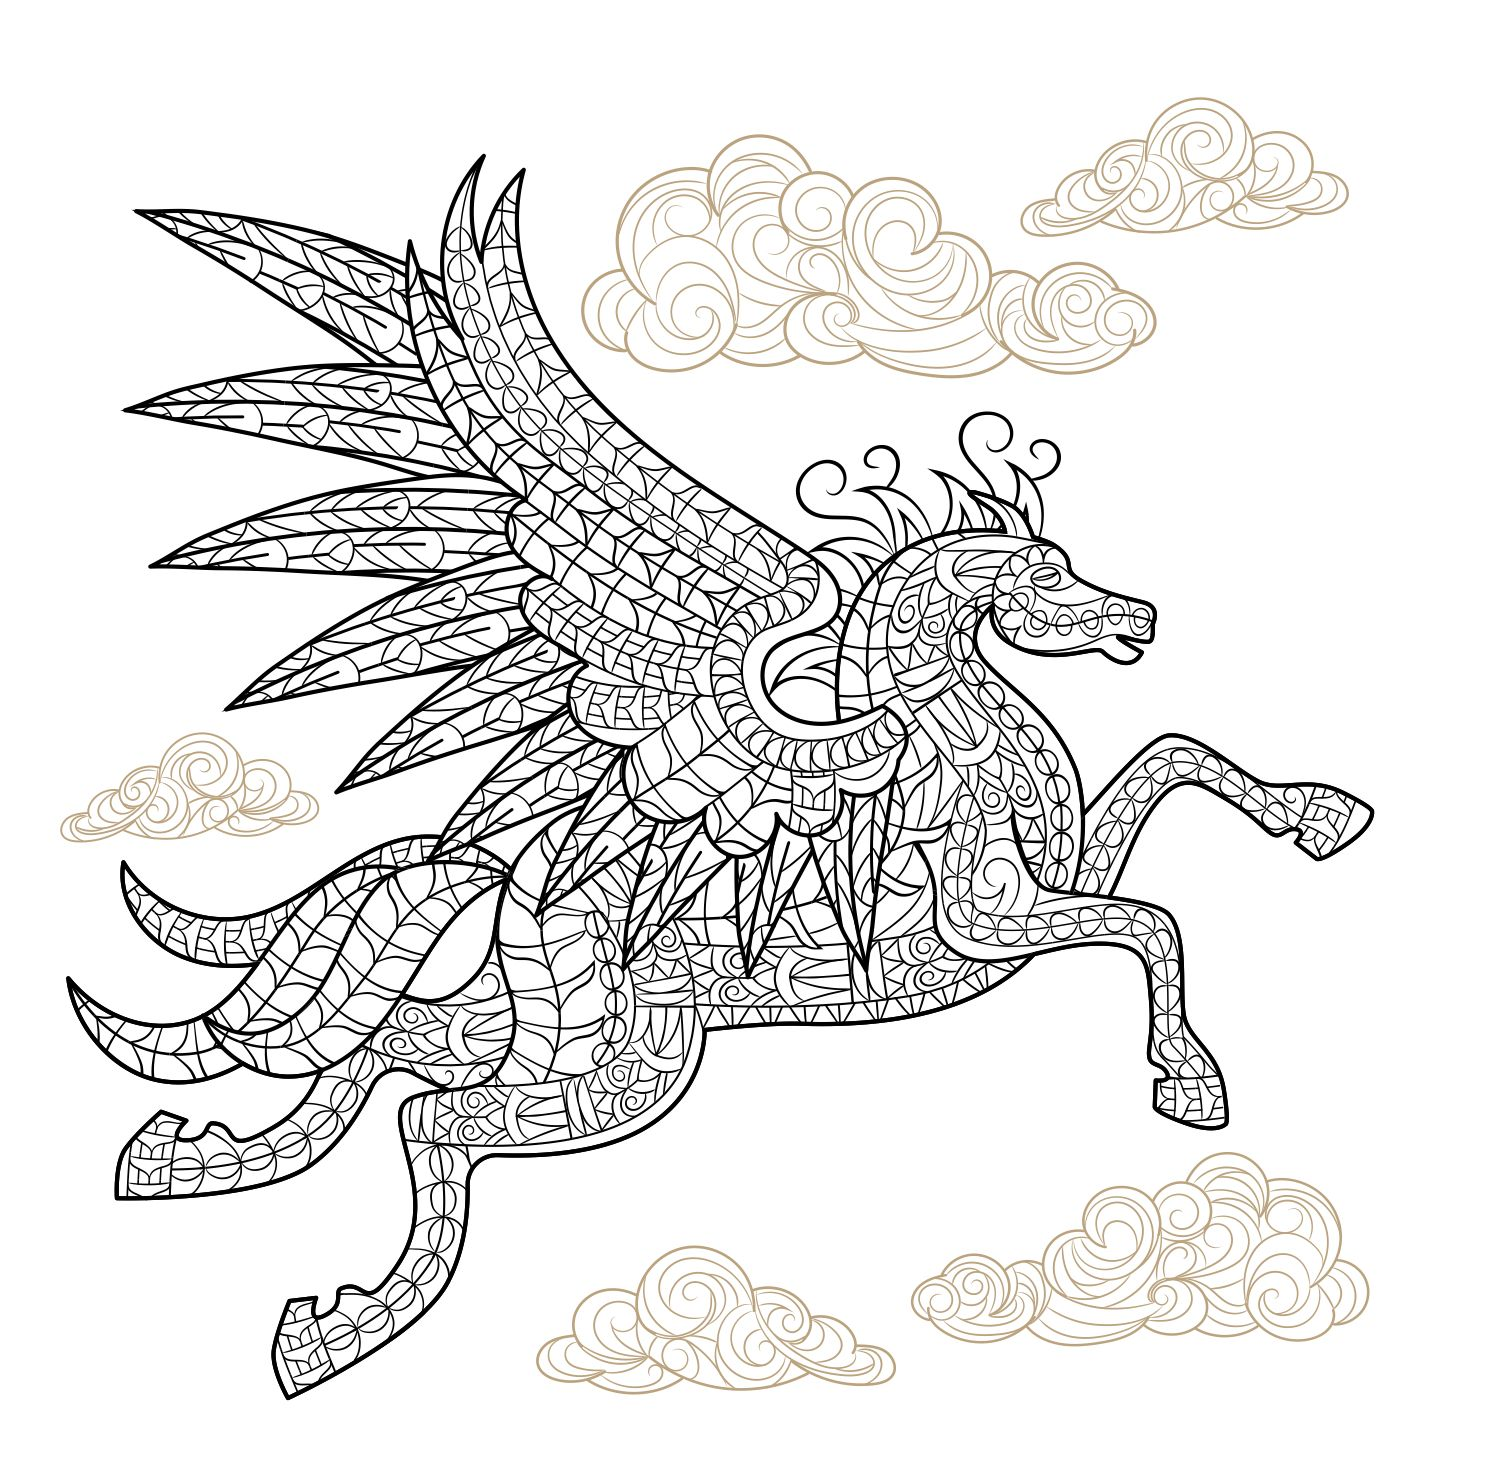 Pegasus Winged Horse Adult Coloring Page - Craftfoxes